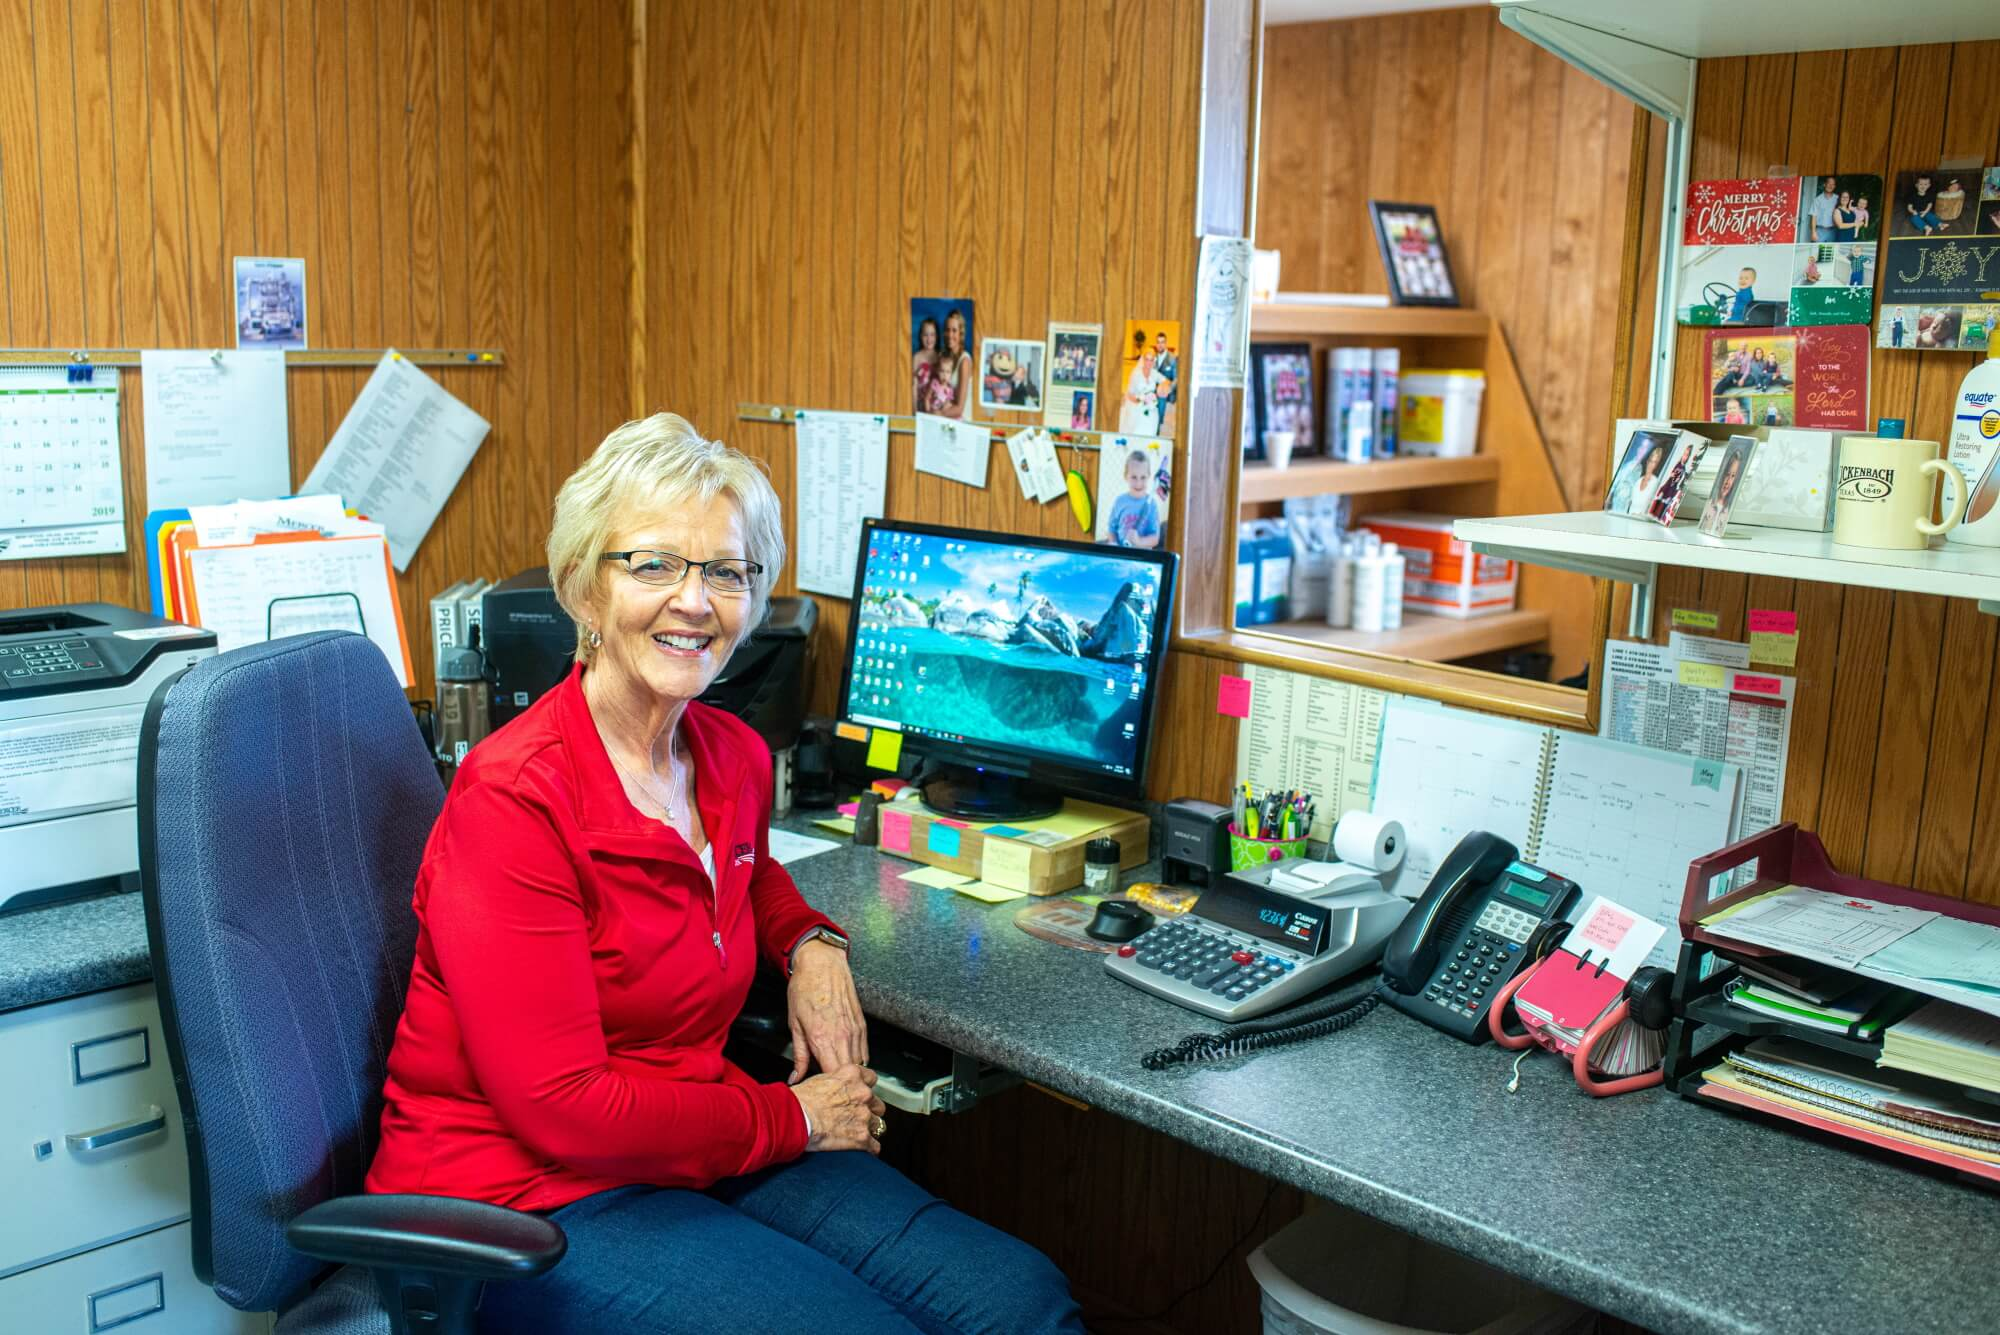 Suzy Smalley retires after 35 1/2 years with Mercer Landmark